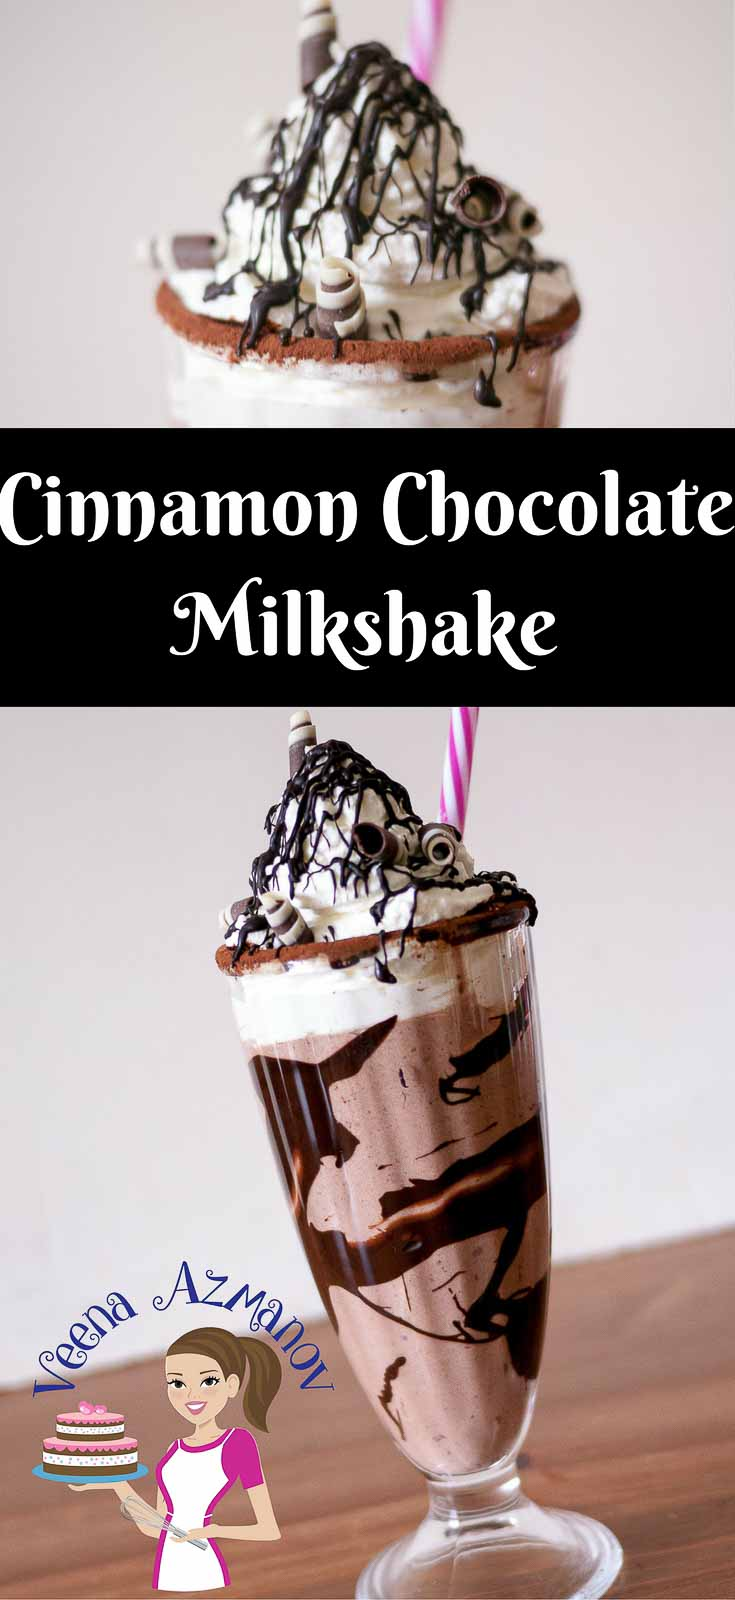 Cinnamon and Chocolate has always been a perfect combination. This Cinnamon Chocolate Milkshake become even better with some rich and indulgent ice cream and quick homemade chocolate sauce to top it off.